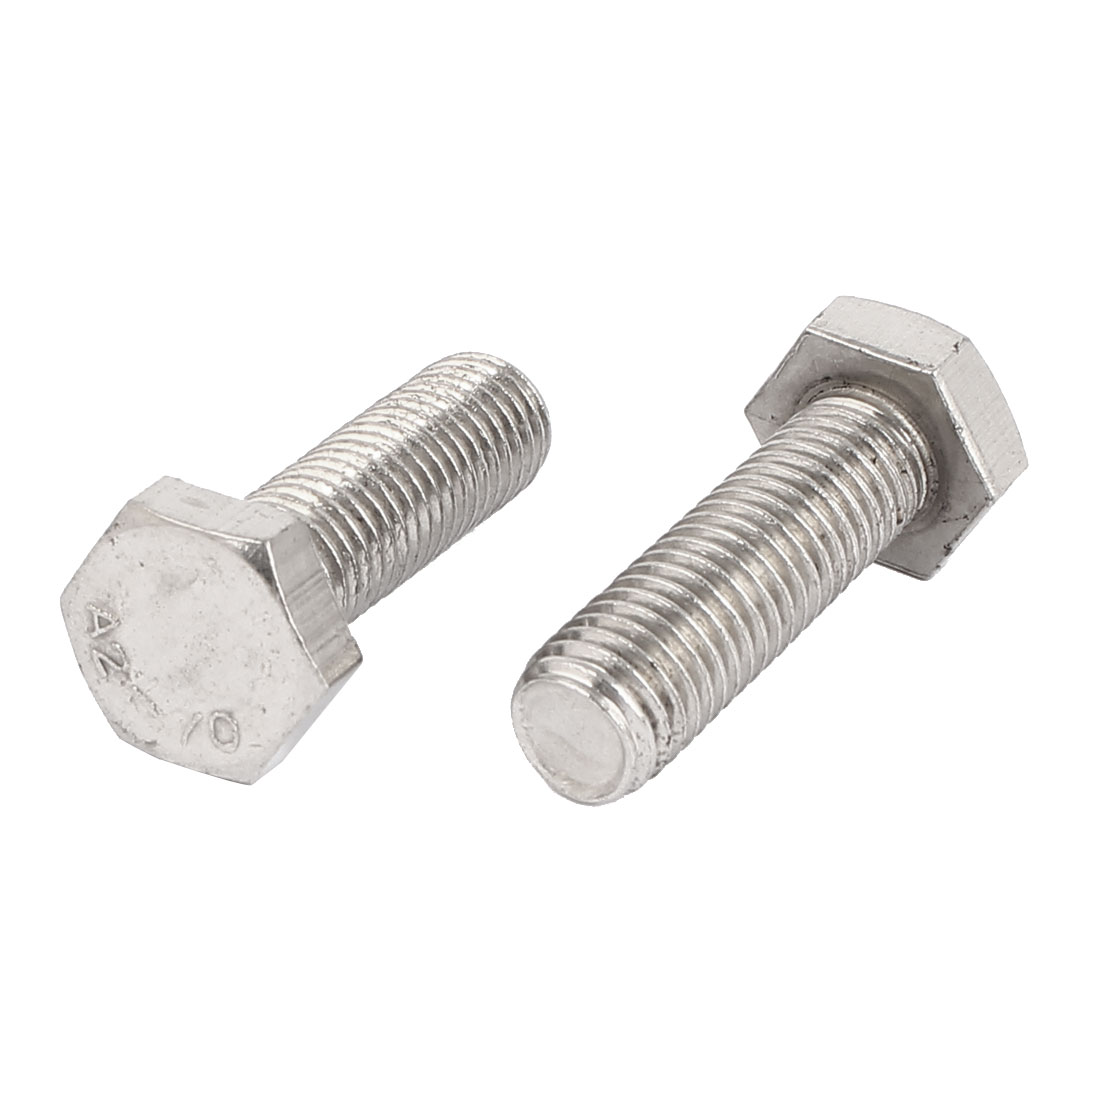 M14 x 45mm Stainless Steel Fully Thread Fasteners Hex Hexagon Screws Bolts 2PCS